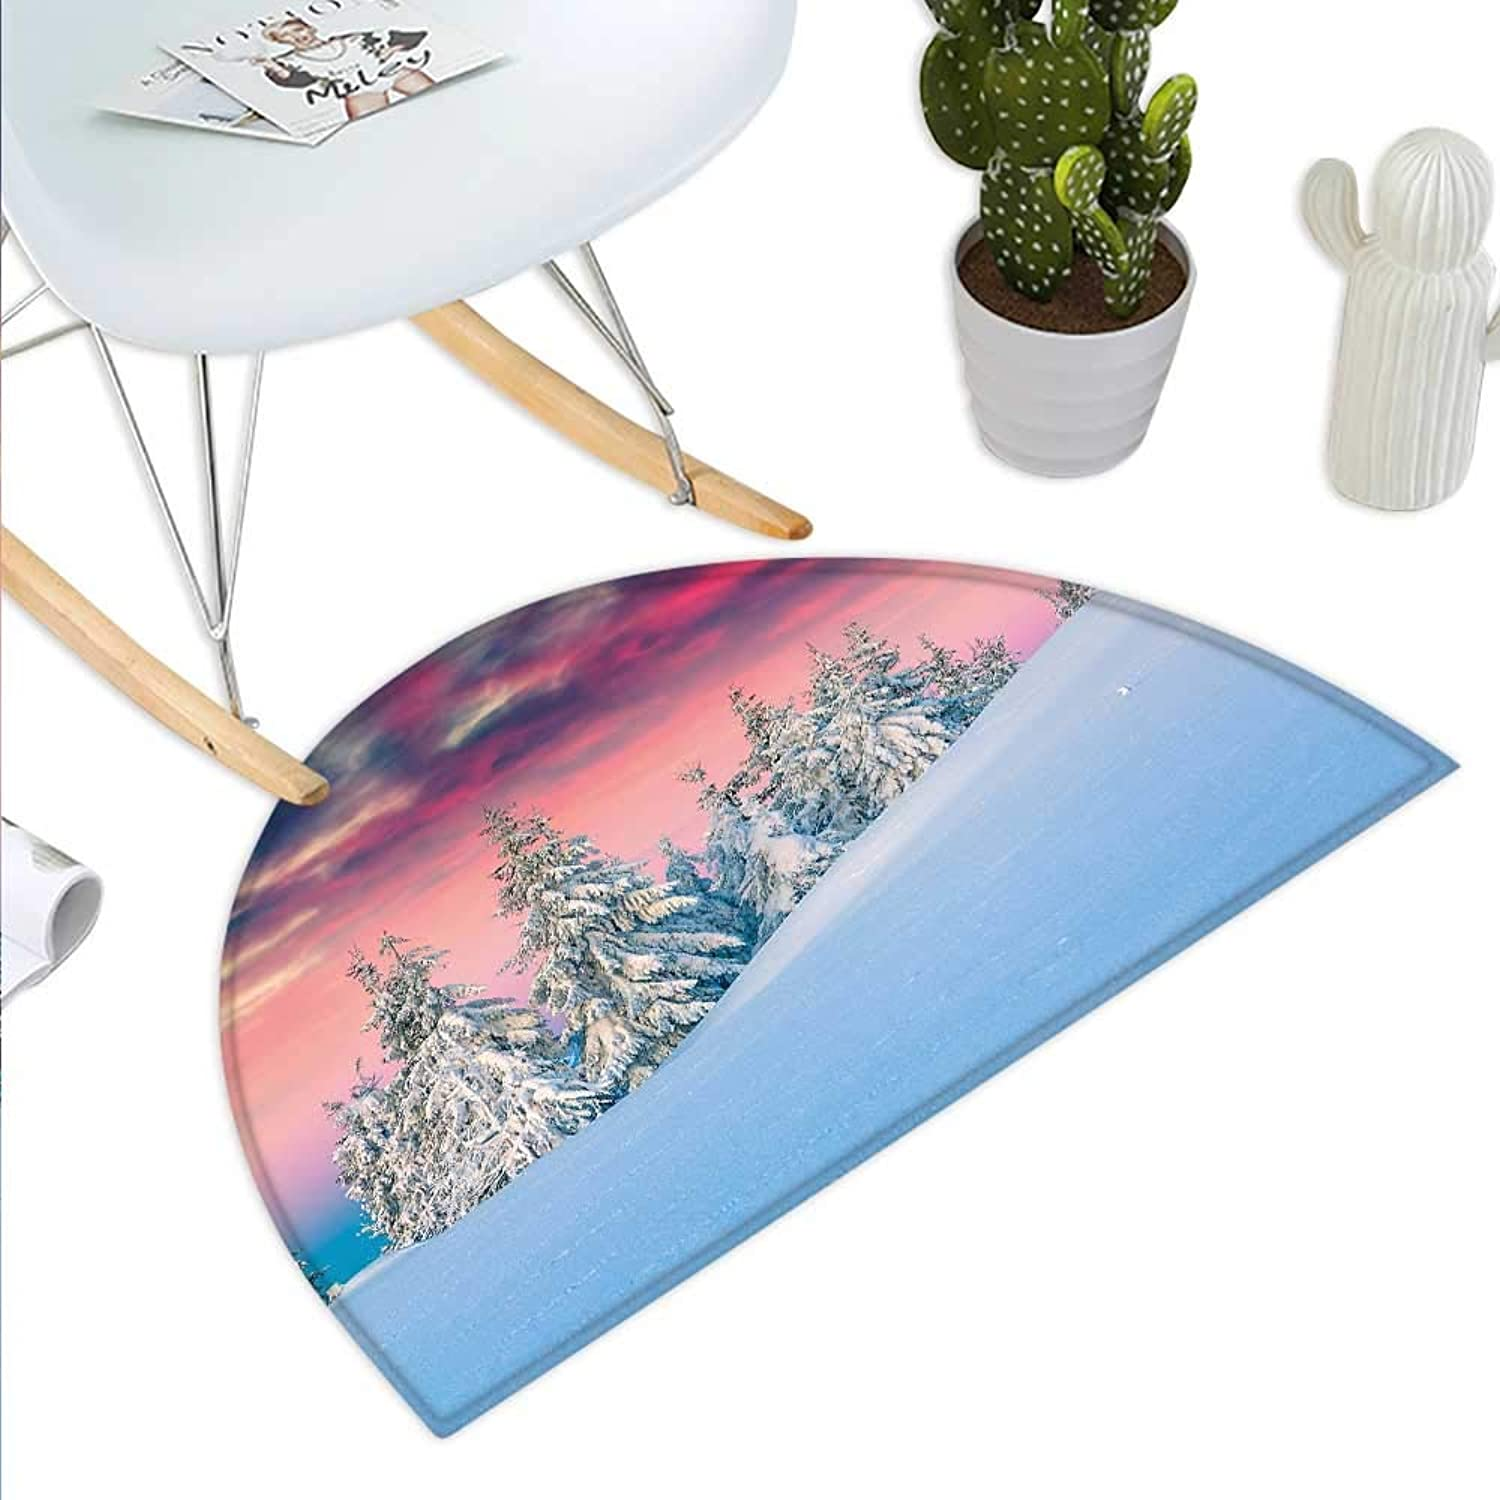 Winter Semicircle Doormat Idyllic Scenery in Snow Covered Mountains Pine Tree Forest Majestic Sky Serenity Halfmoon doormats H 39.3  xD 59